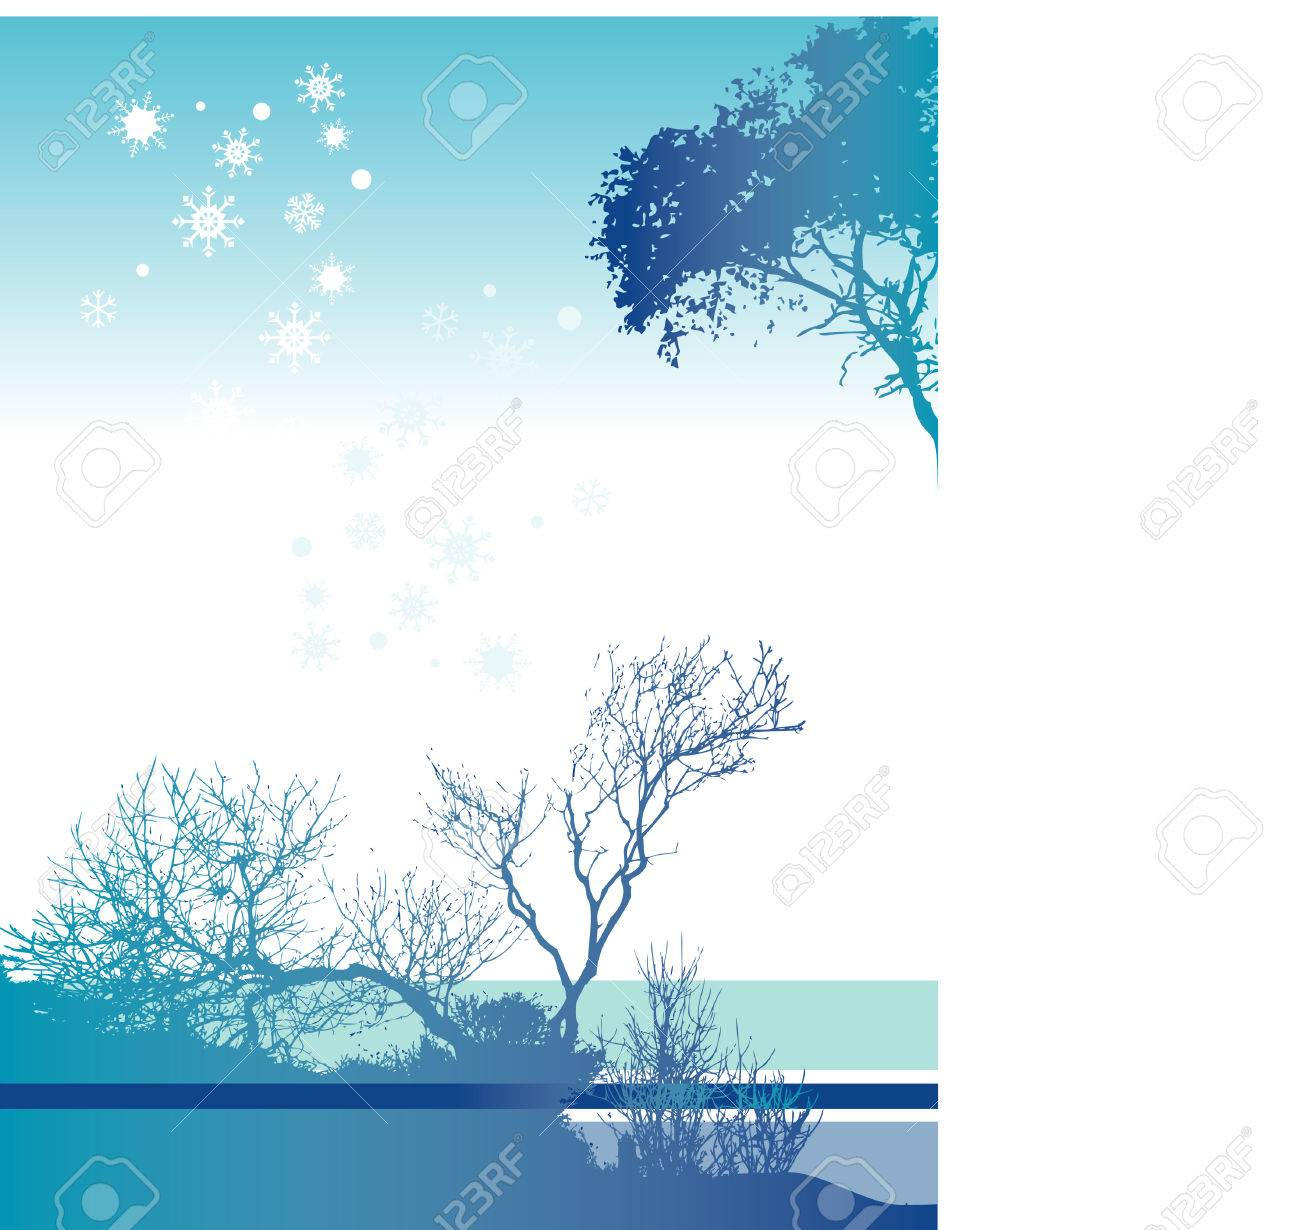 An interesting blue and white Christmas landscape with snow flakes Stock Vector - 4437340